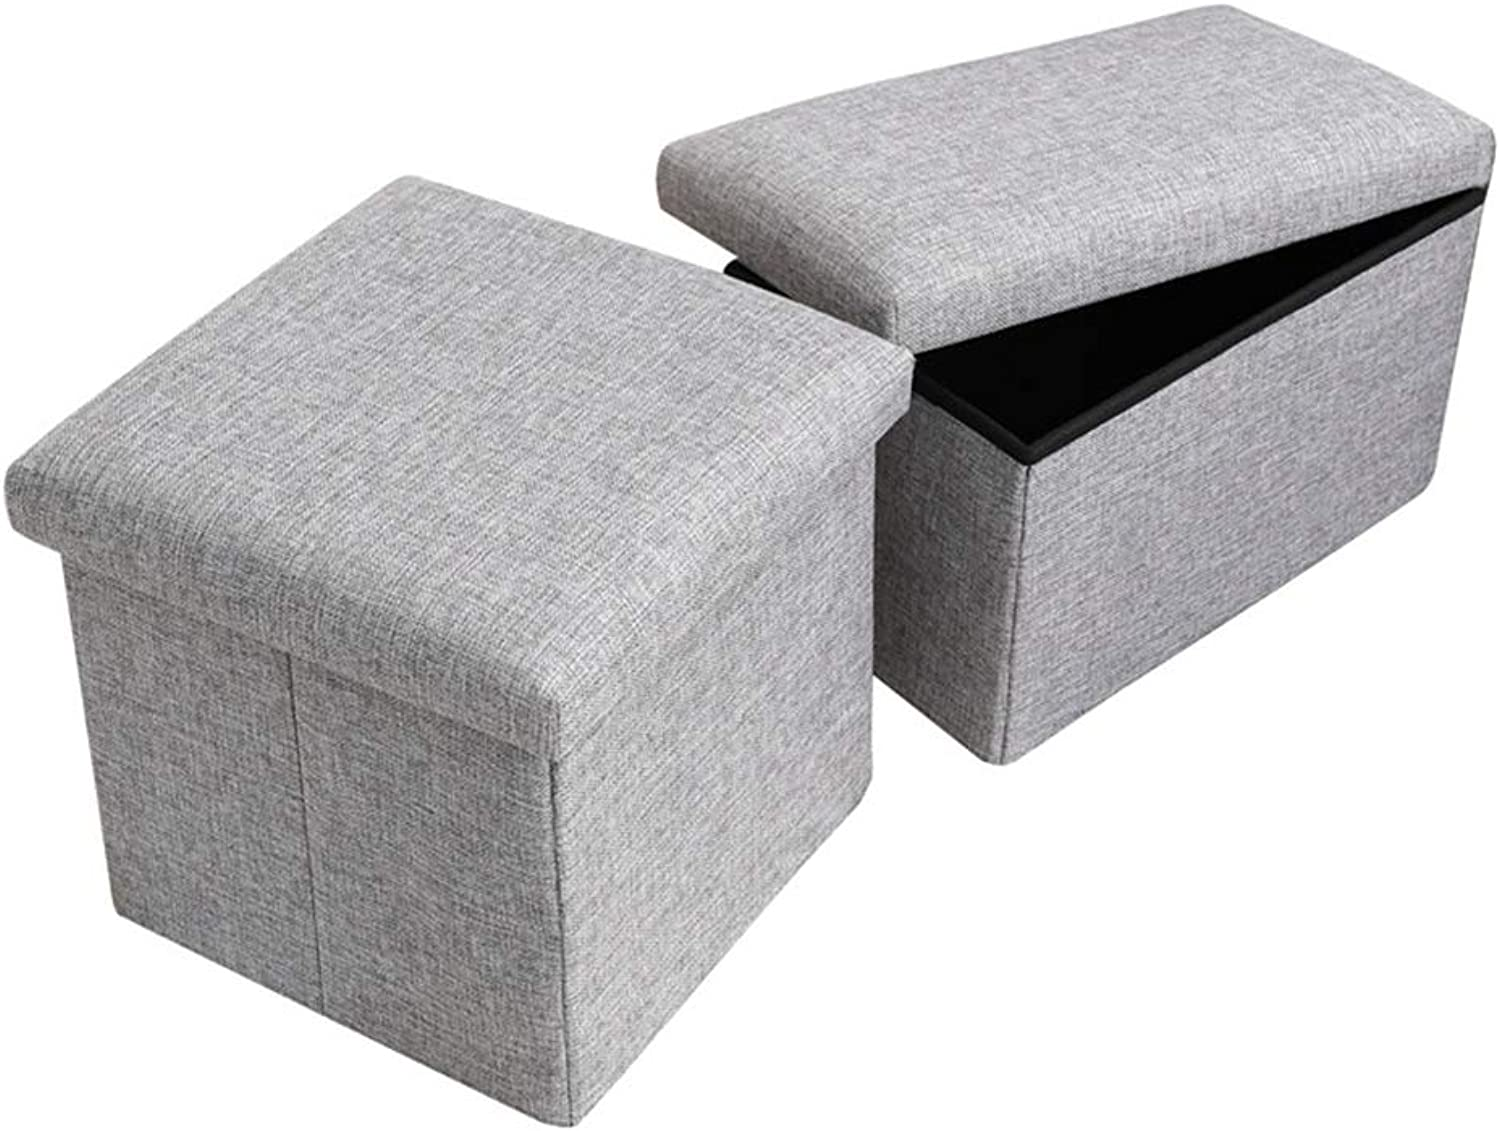 Storage Folding Box Storage Fabric Bench shoes Storage Linen